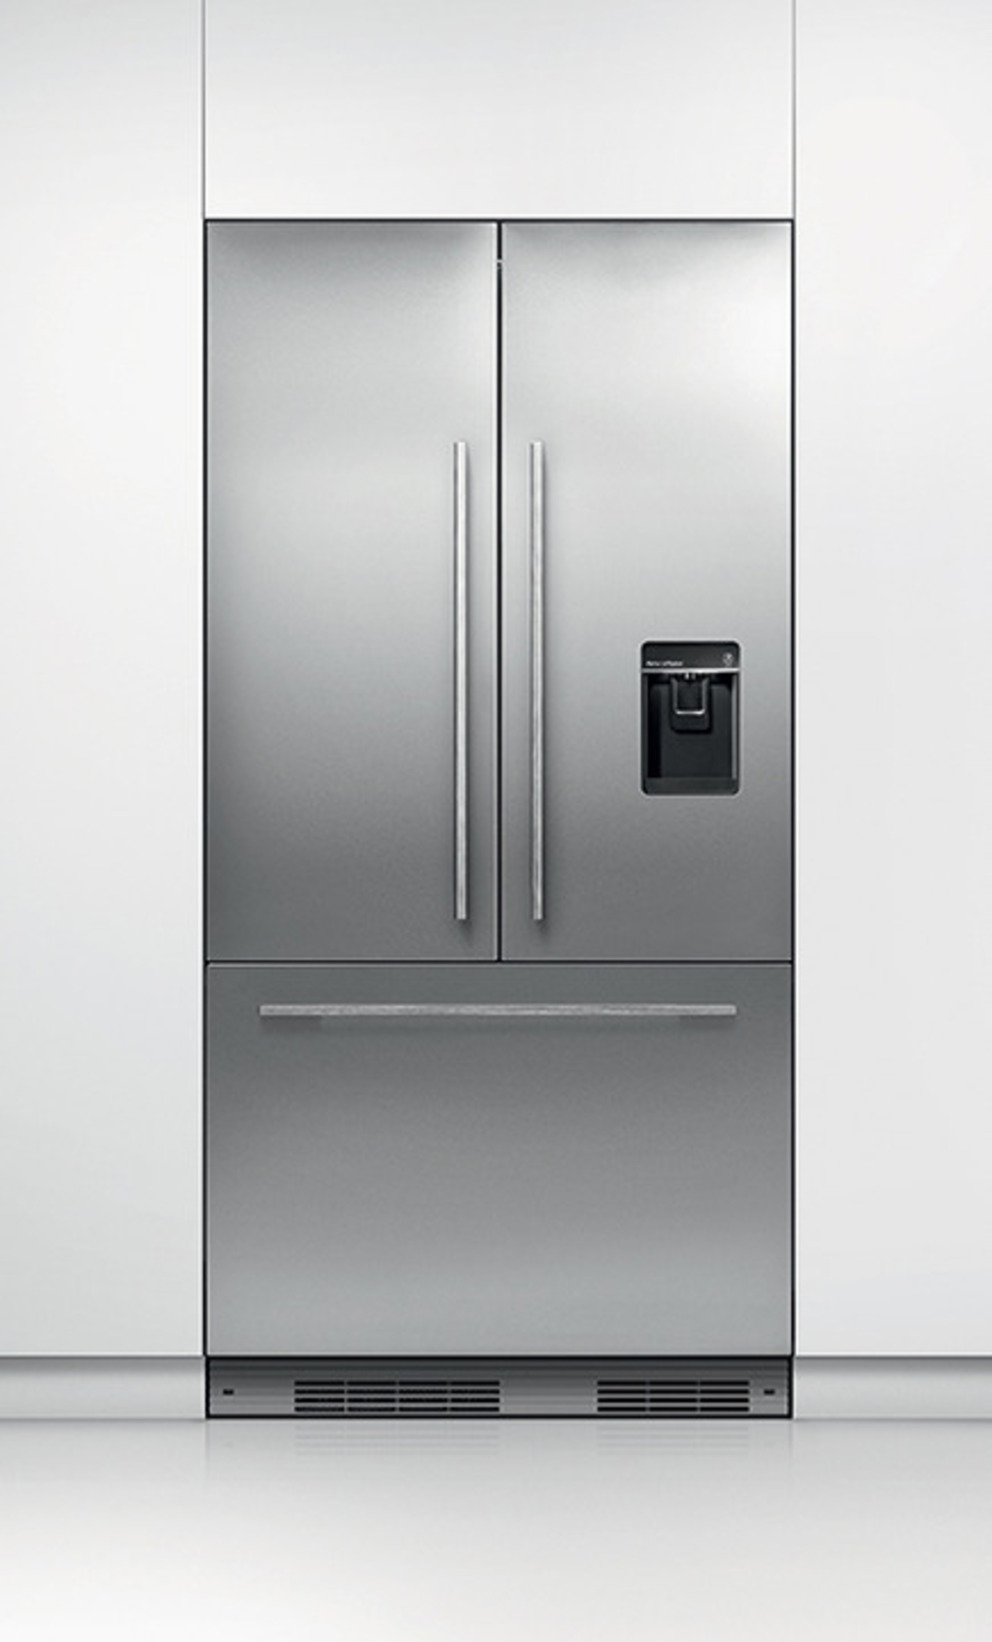 Réfrigérateurs Fisher&Paykel RS36A72U1 + RD3672U (72'' F&P)